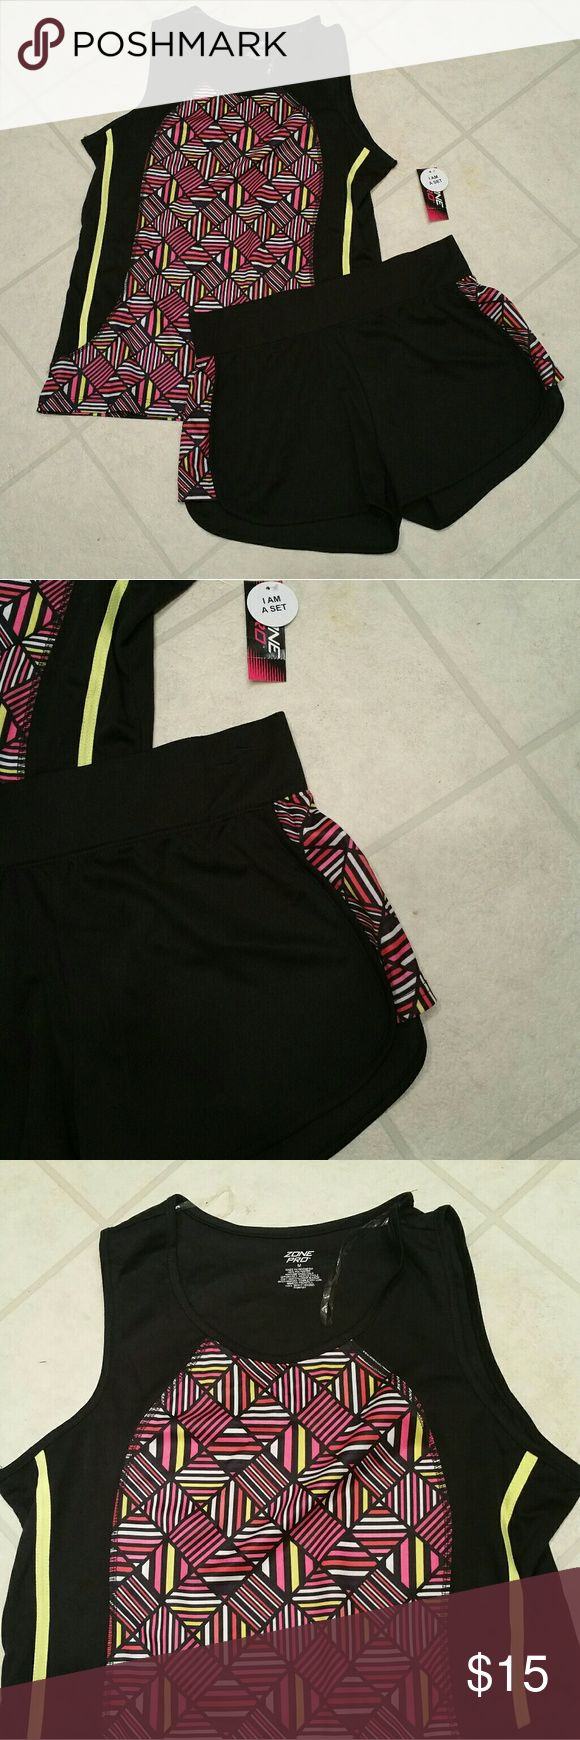 NWT! Women's Zone Pro Pink Workout Set Sz. M & L NWT! Women's Zone Pro Pink Workout Set Sz. M & L   Queue the Kanye workout song with this awesome set. Look your best at the gym this new year.  Color: Black/pink/yellow Sz. M & L AVAIL Type: workout shorts set  Lightweight breathable technology with awesome style. Comes with a tank top and shorts. Zone Pro Other